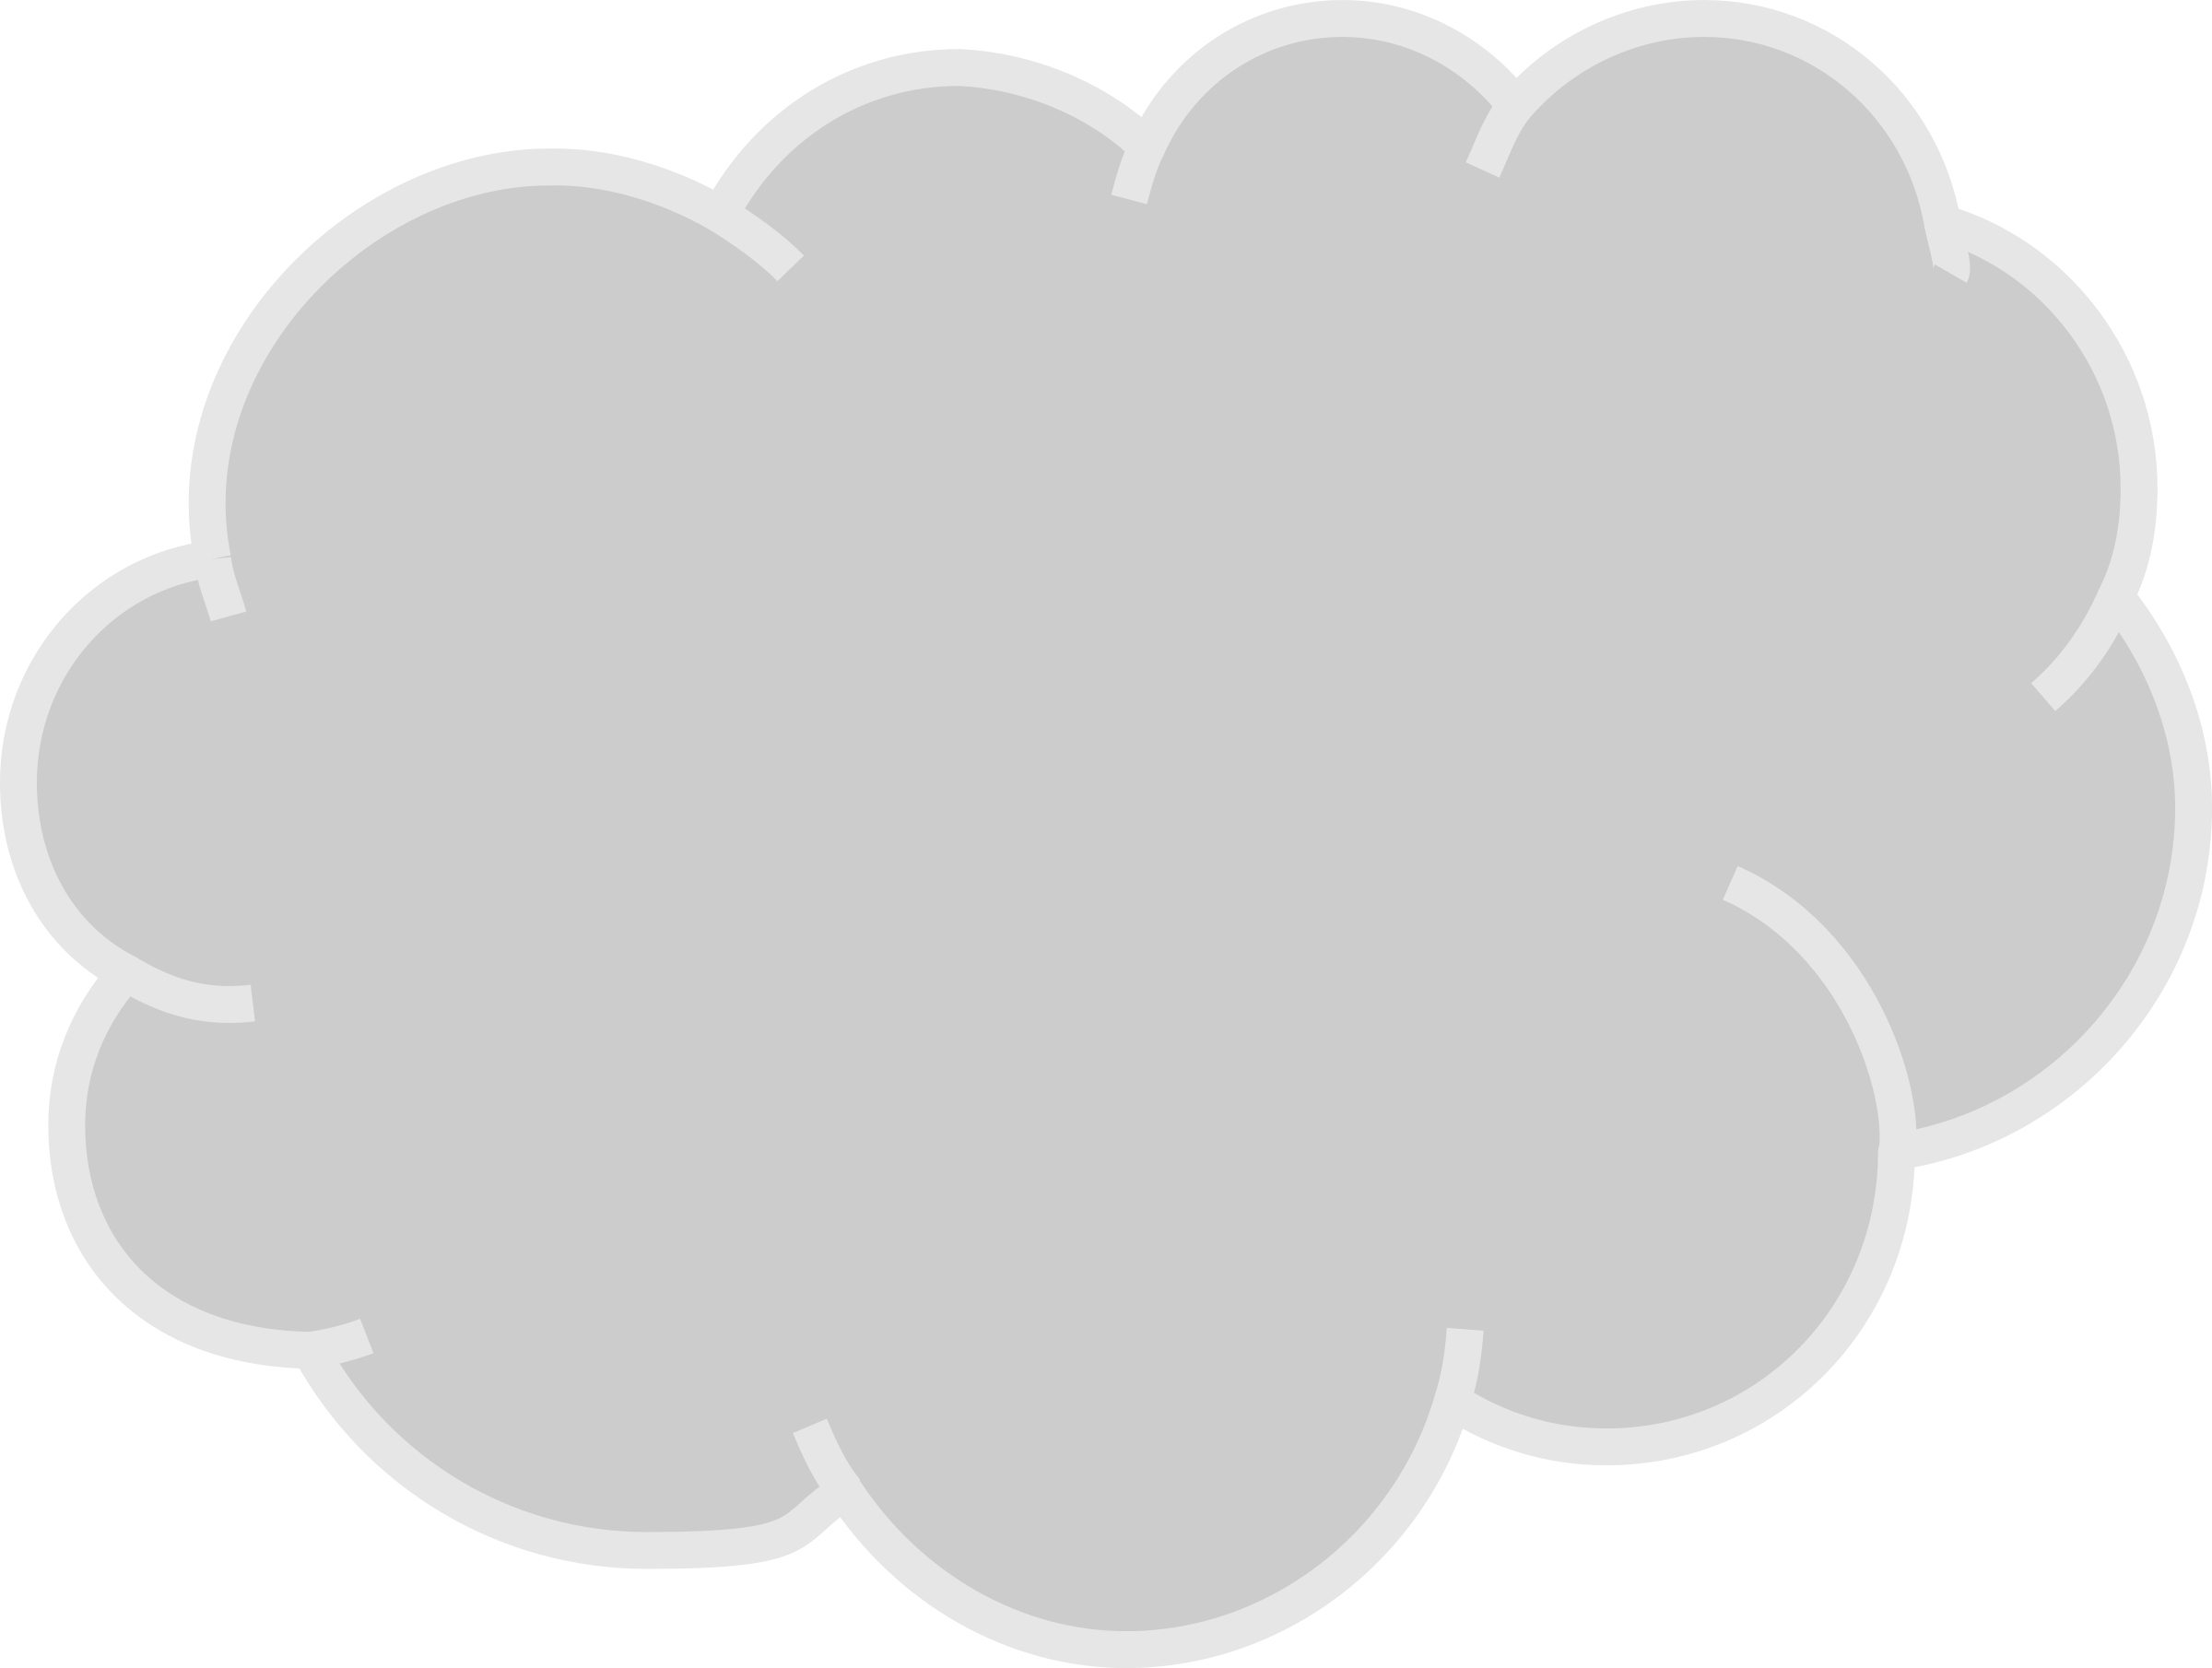 Lightening clipart grey cloud – com Cloud white and